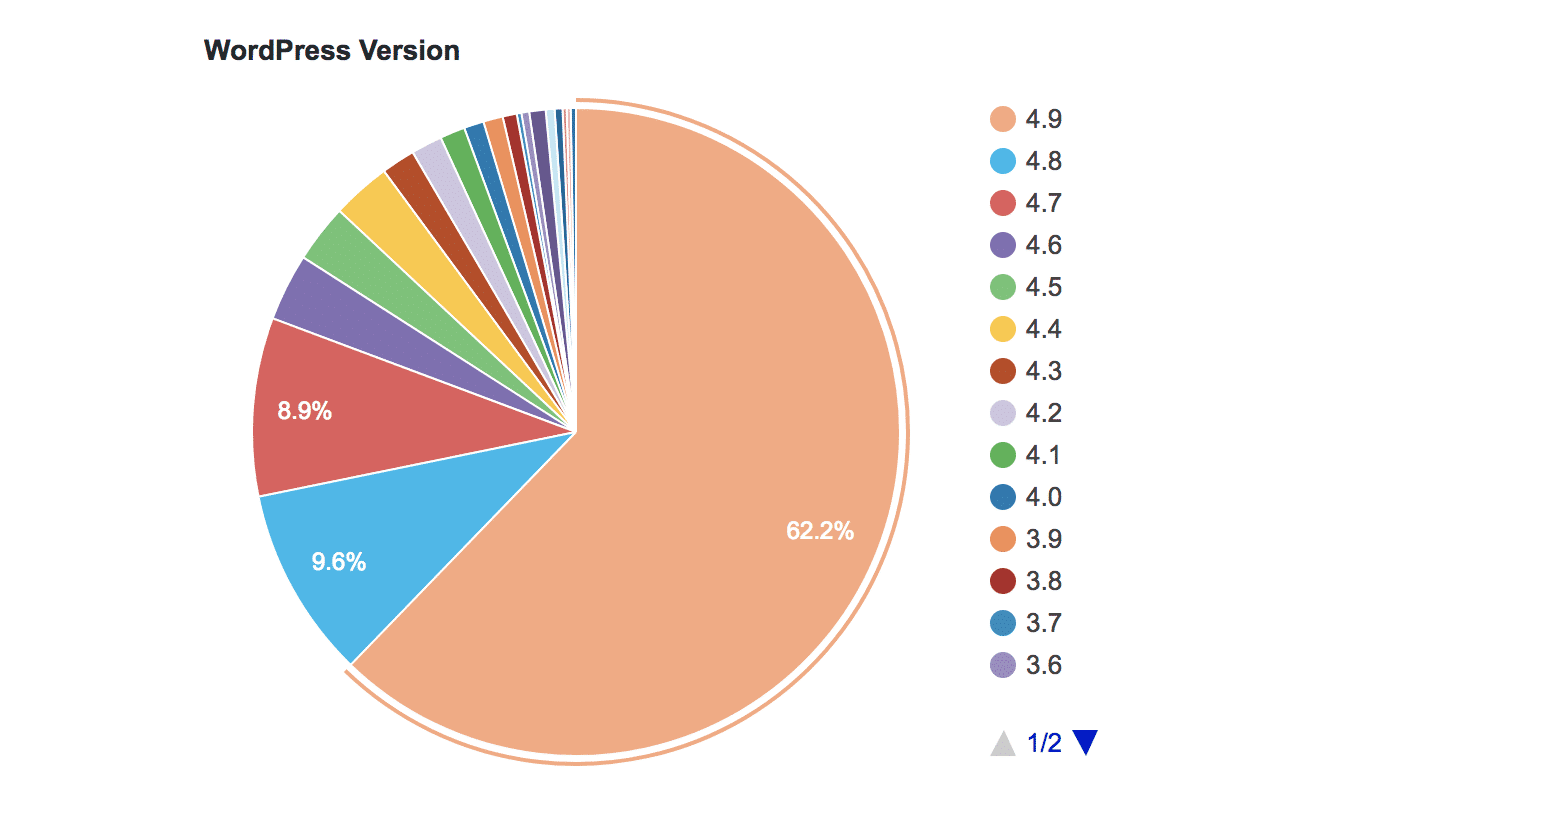 WordPress Usage By Version